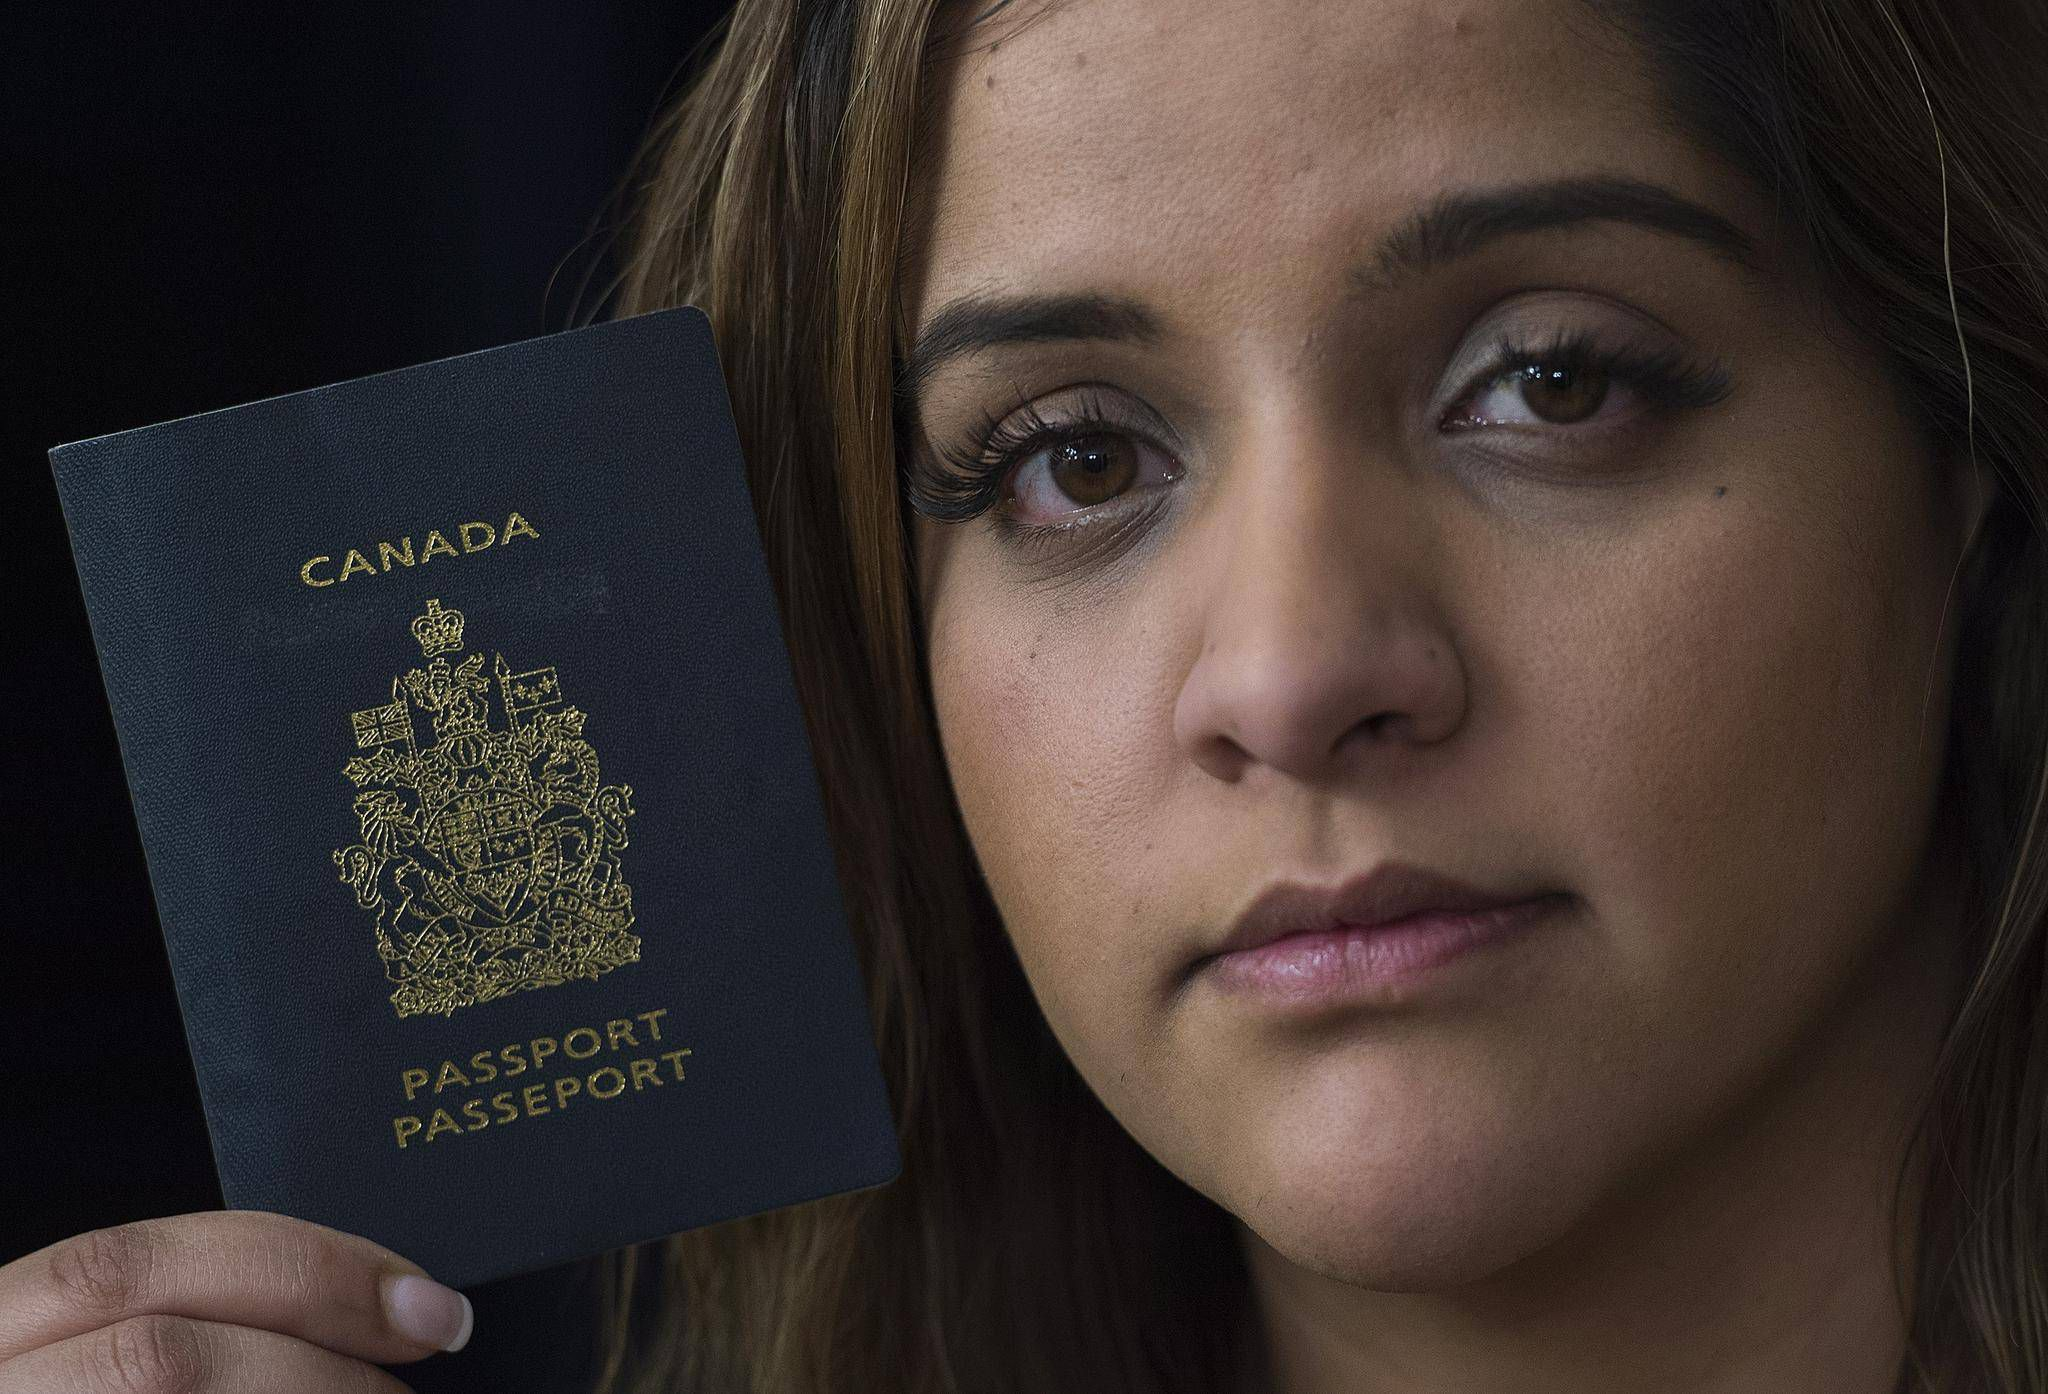 Canadian citizen denied entry to U S  told she needed visa to get in